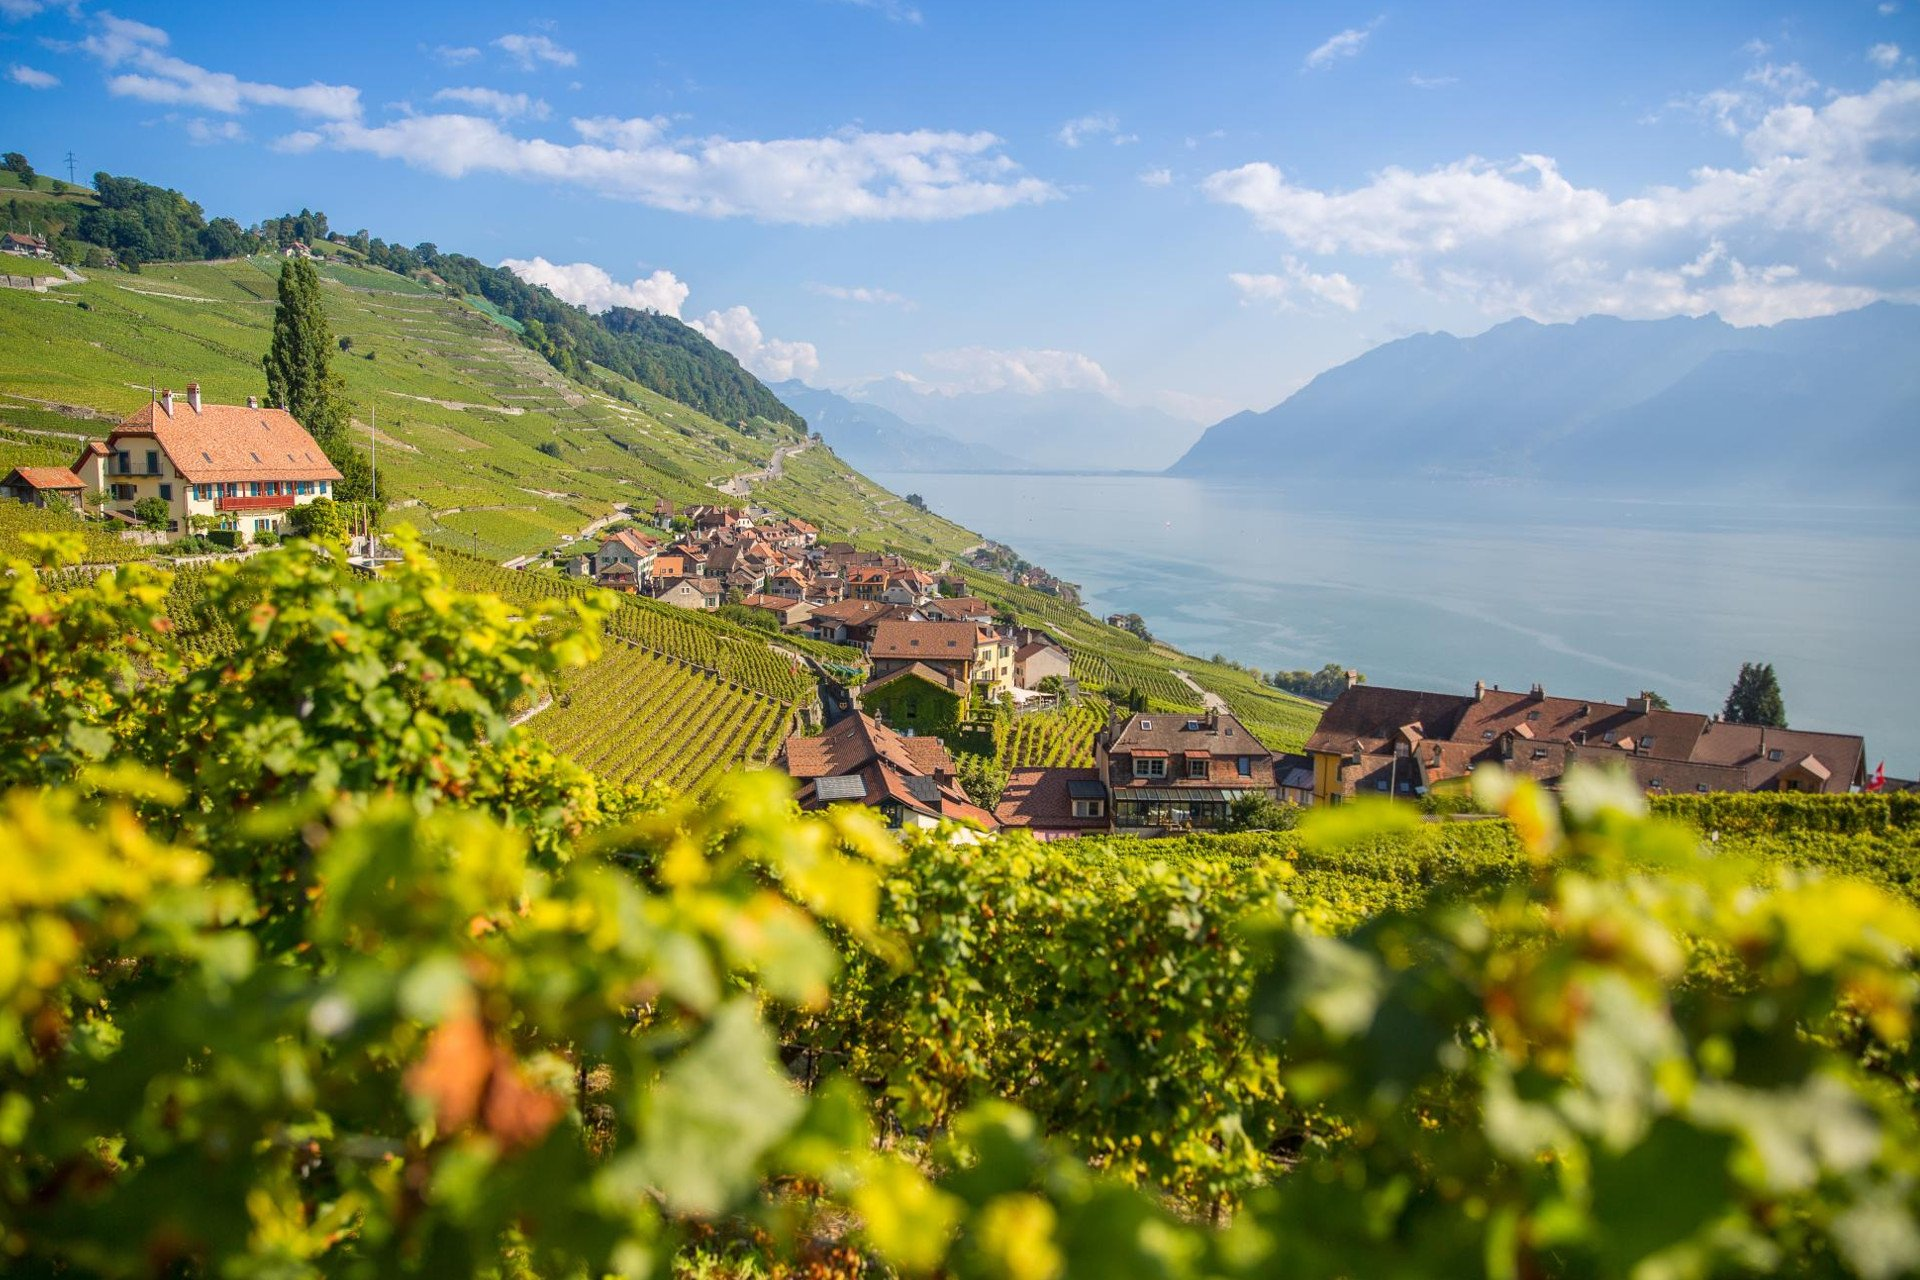 Suisse-switzerland-lavaux-vaud-private tour